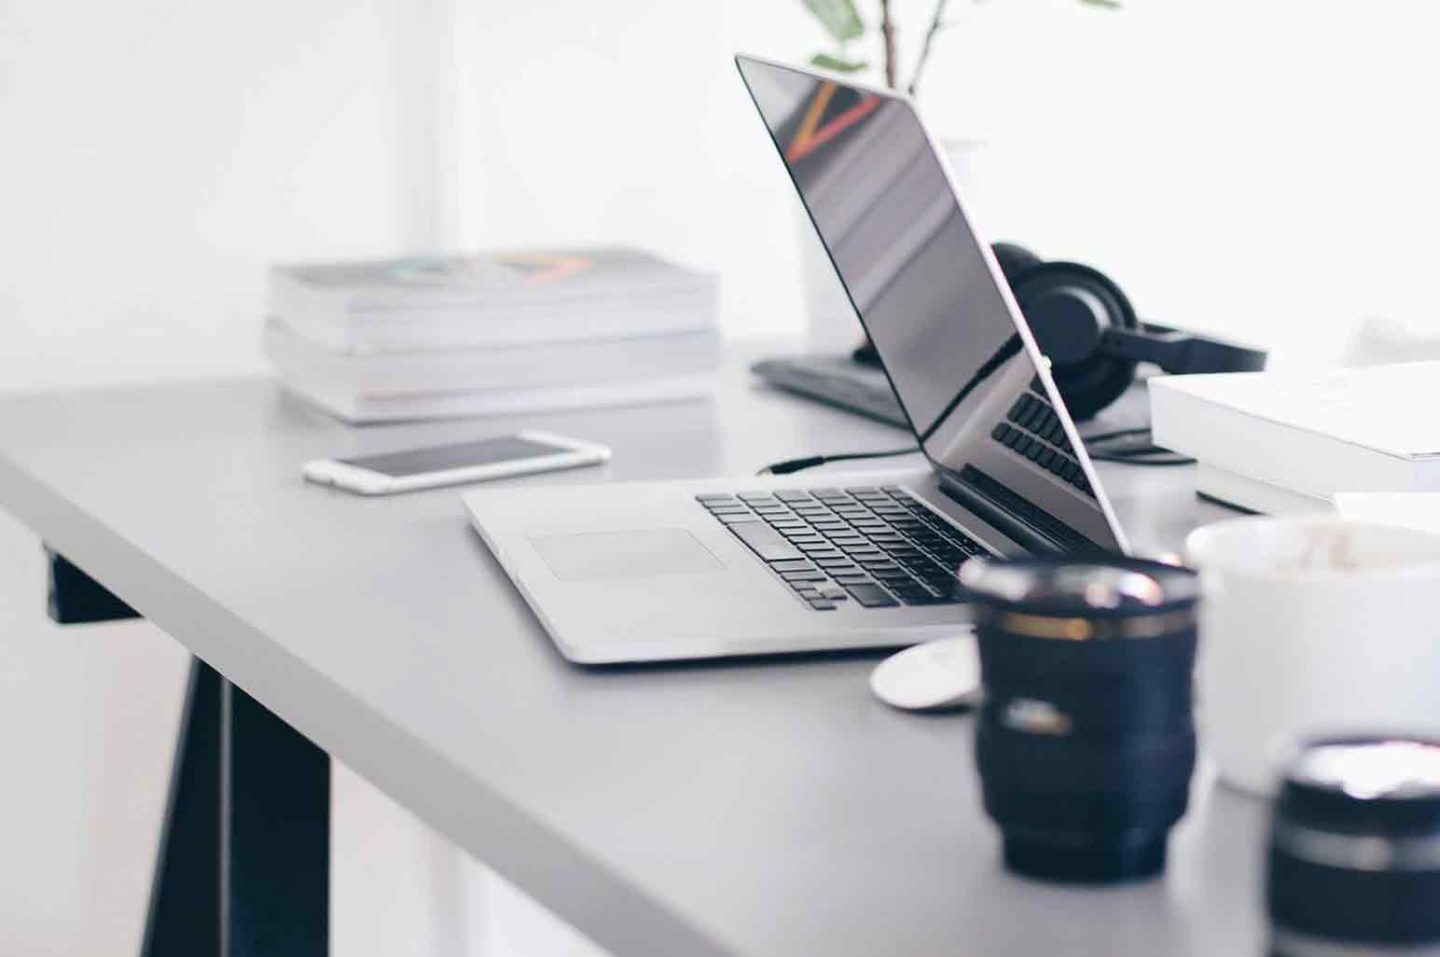 Tasks to Automate for Workplace Efficiency